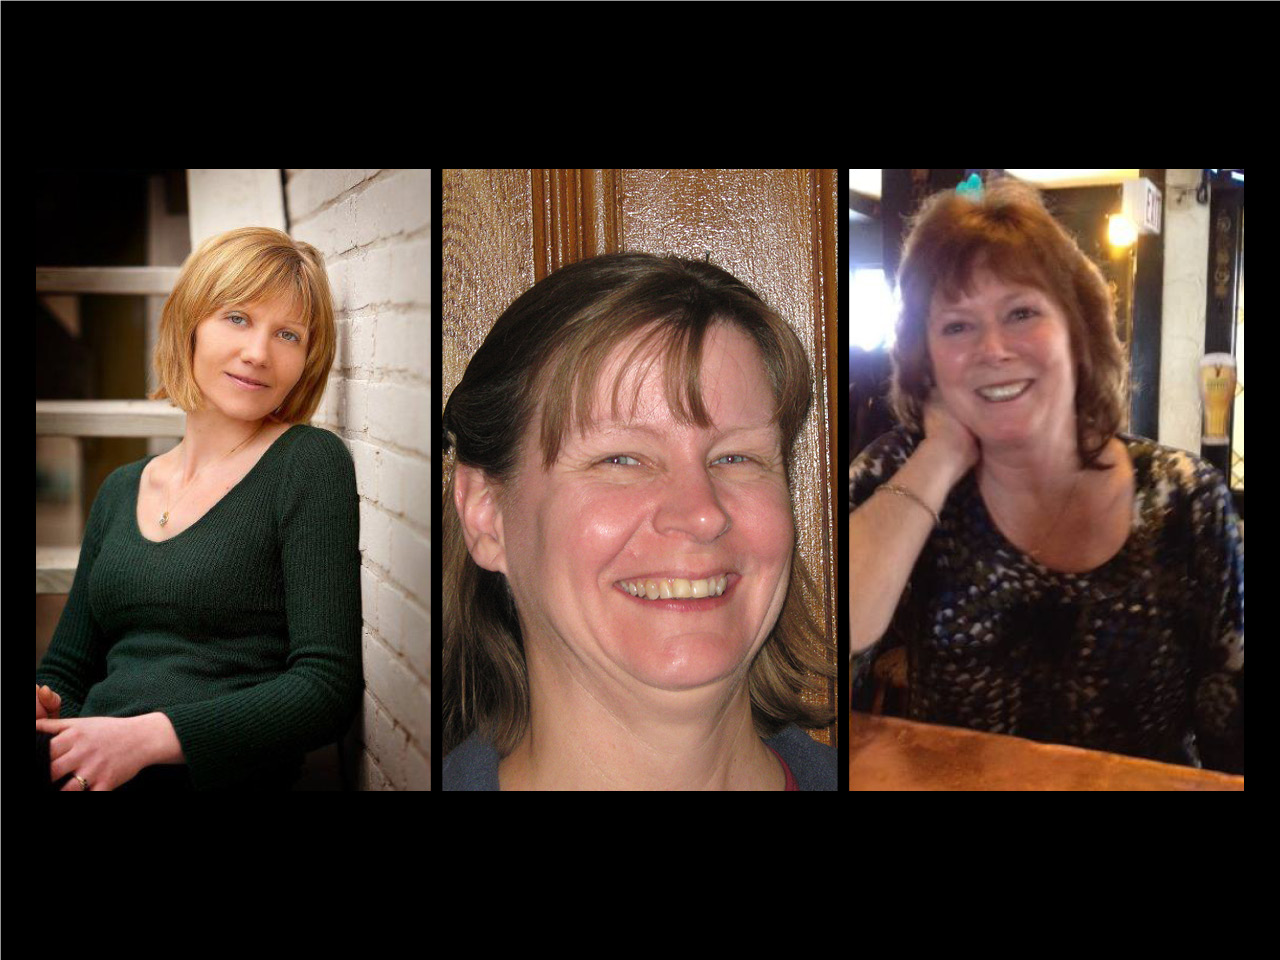 Anastasia Kuzyk, Nathalie Warmerdam and Carol Culleton were murdered by Basil Borutski on September 22, 2015.